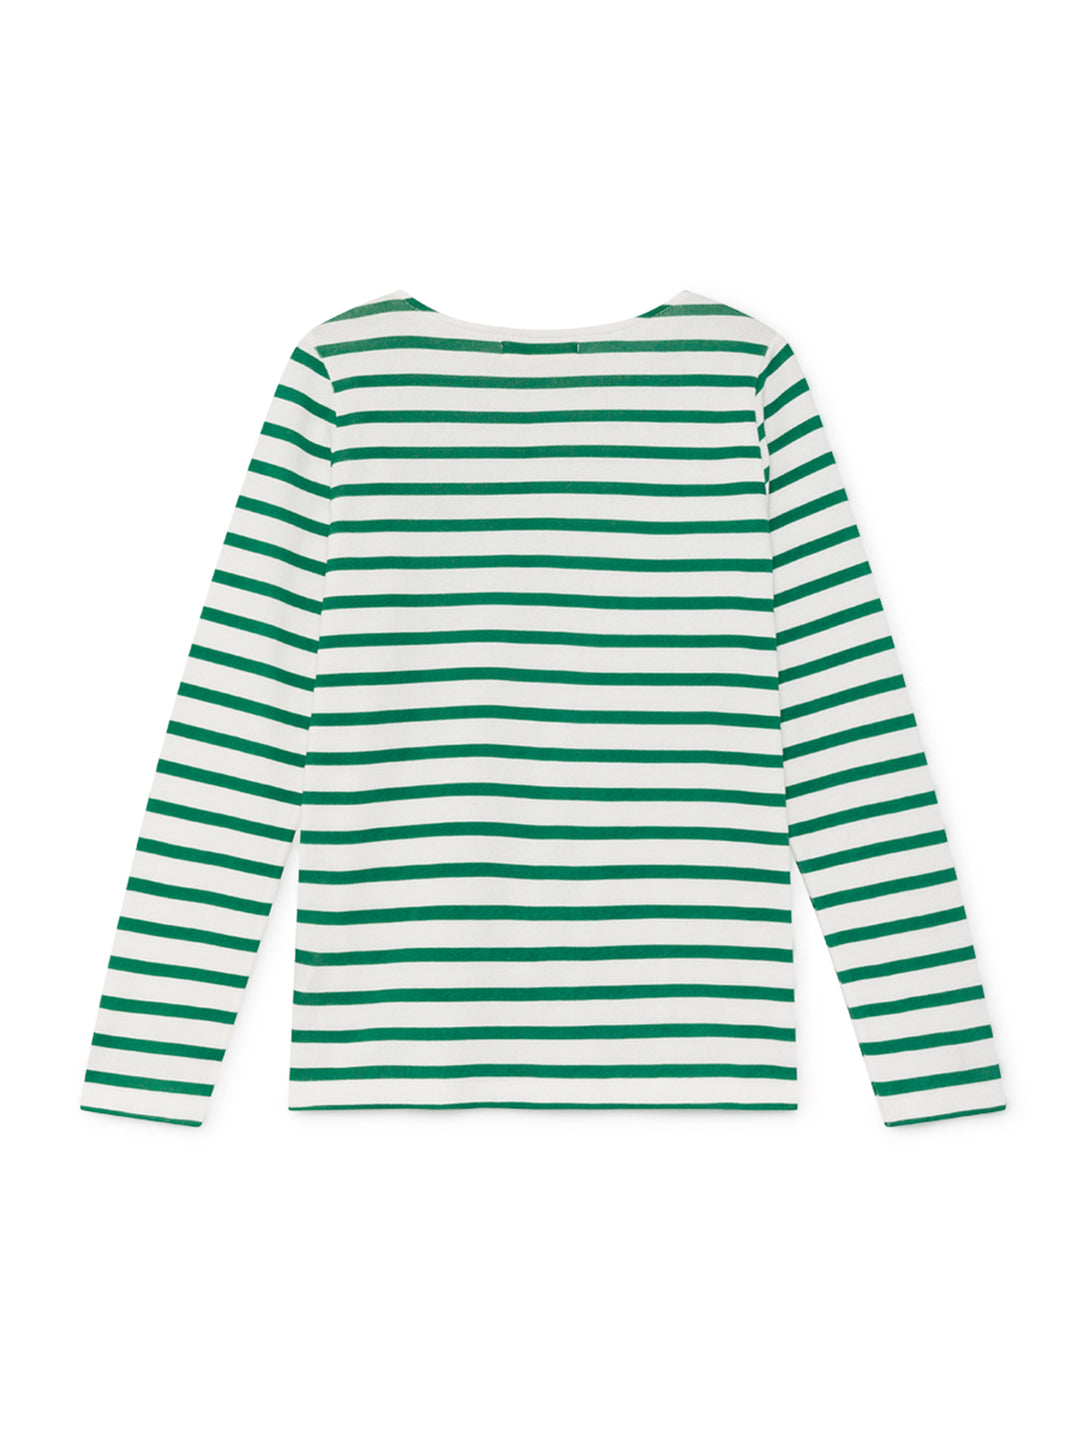 TWOTHIRDS Womens Tee: Martinica - Verdant back